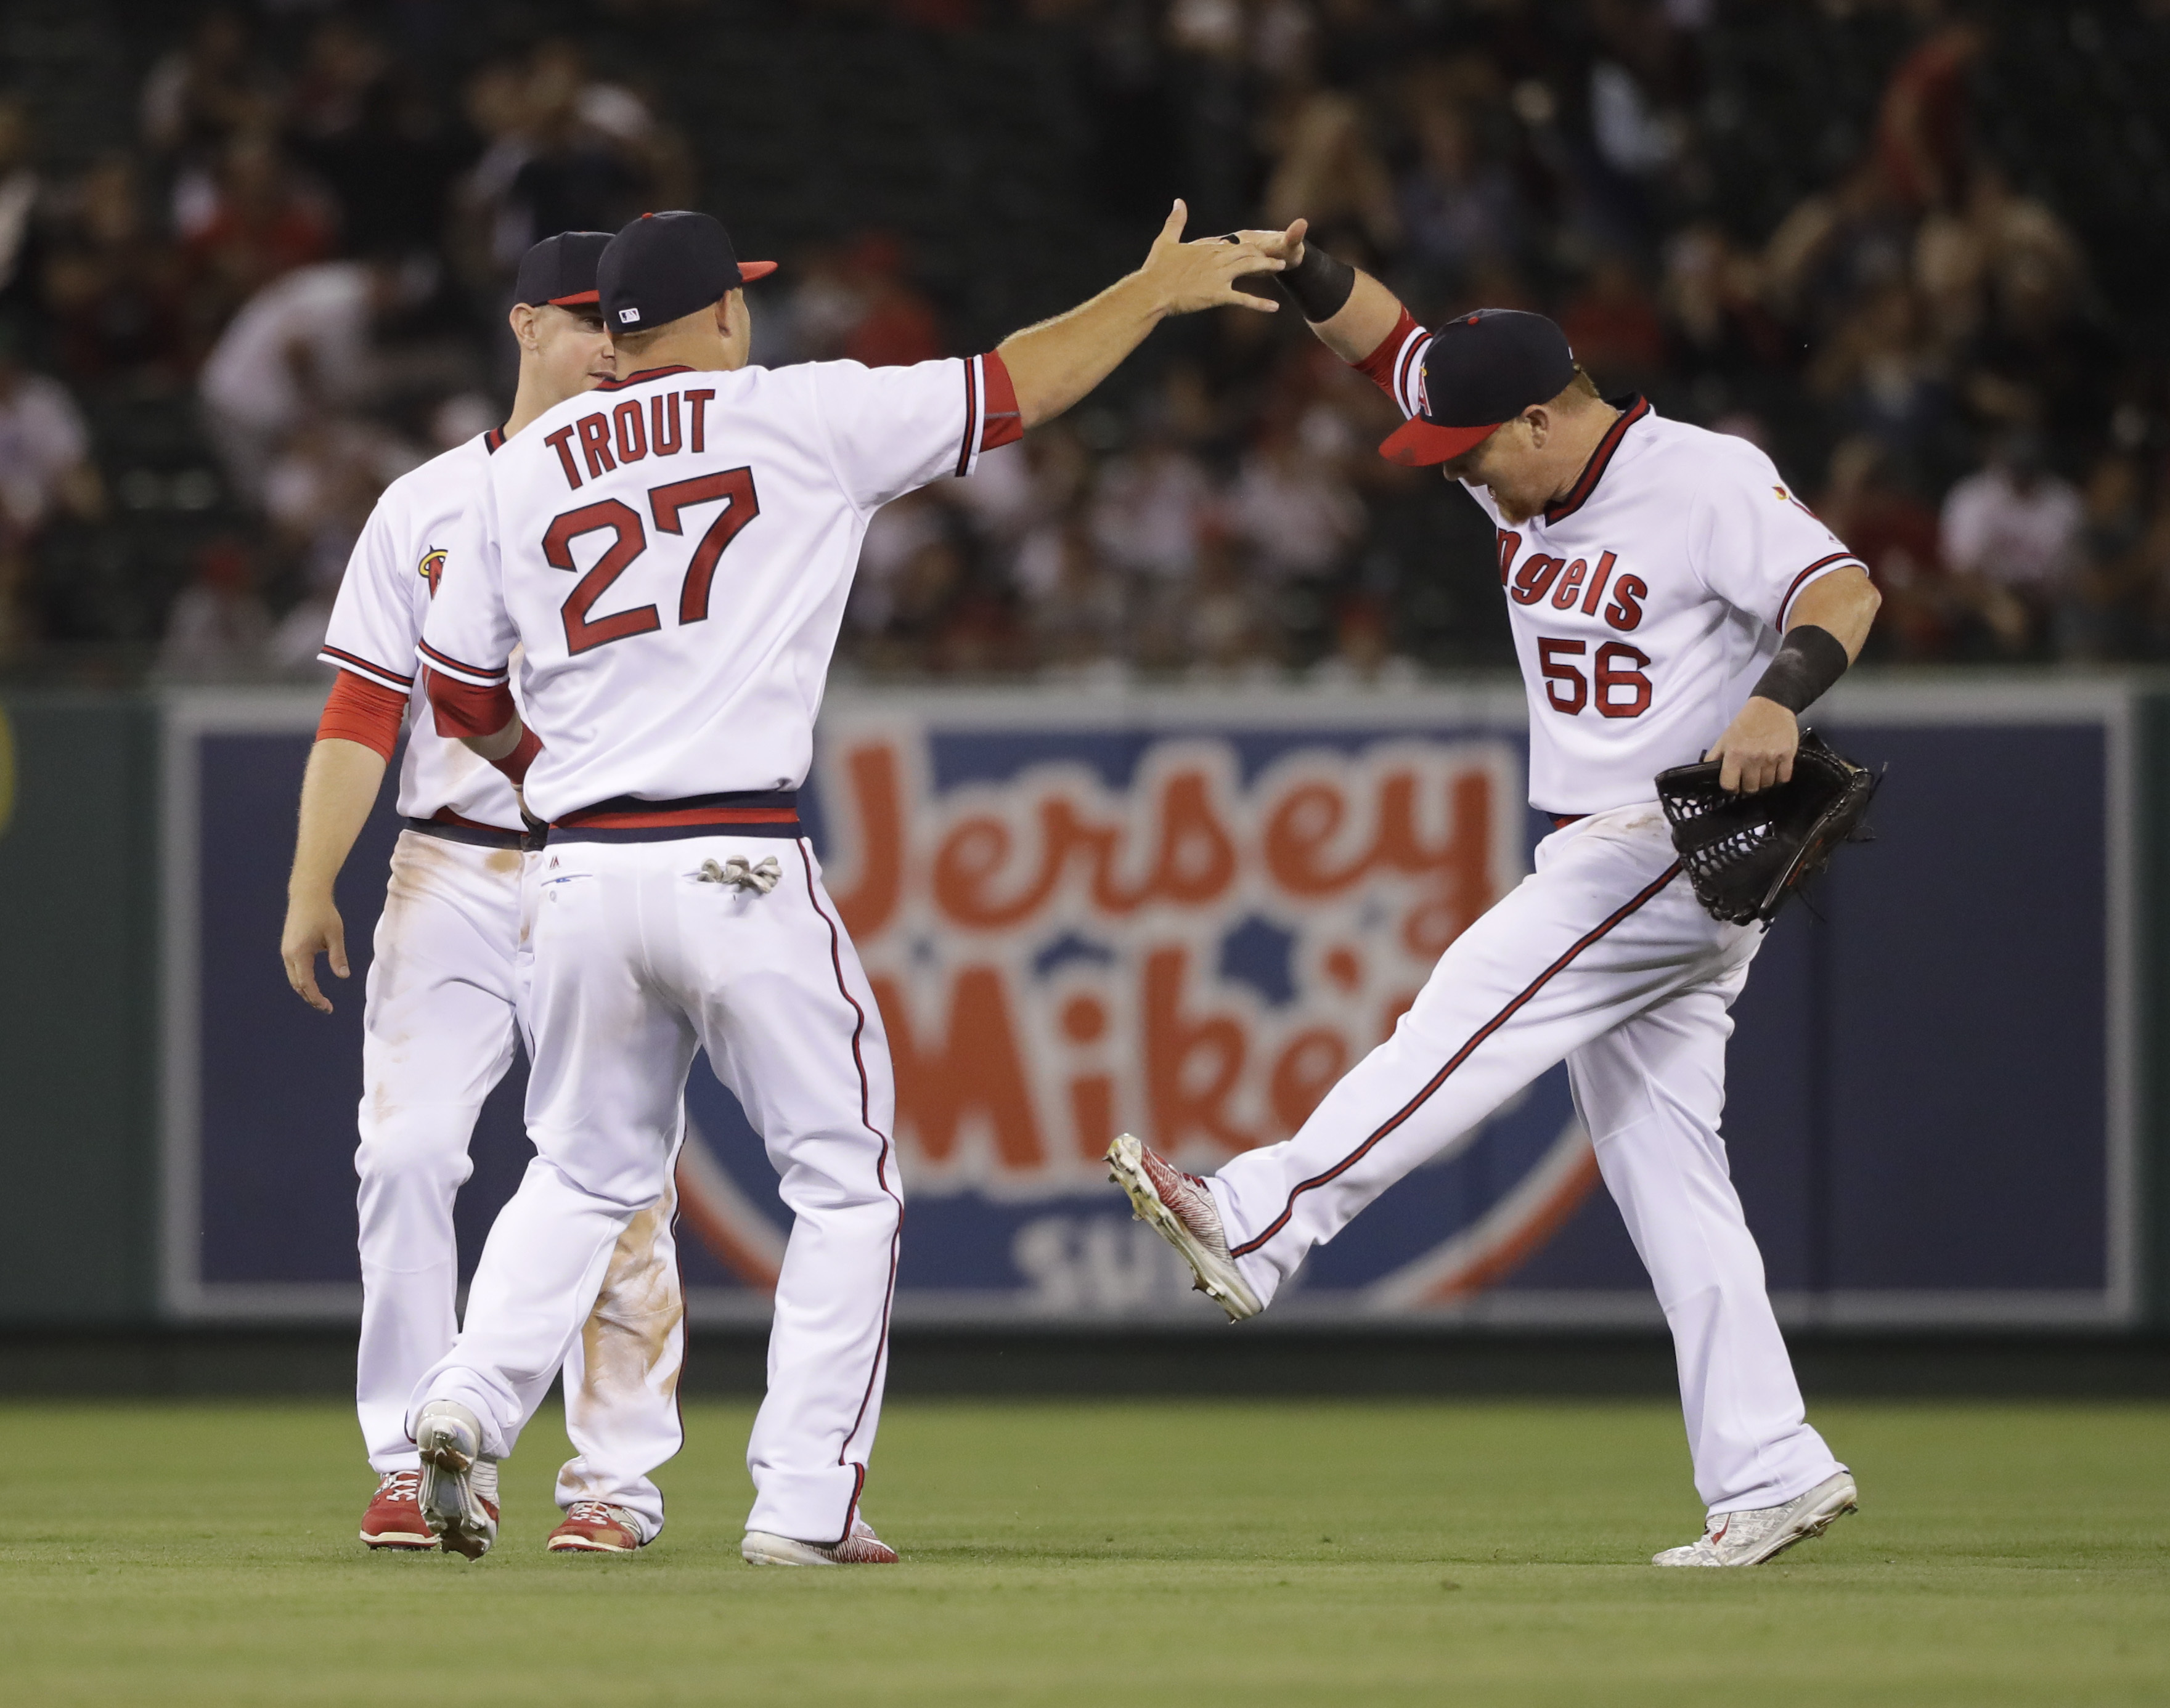 Los Angeles Angels' Mike Trout, left, and Kole Calhoun, right, celebrate the team's 7-0 win over the Chicago White Sox in a baseball game, Friday, July 15, 2016, in Anaheim, Calif. (AP Photo/Jae C. Hong)